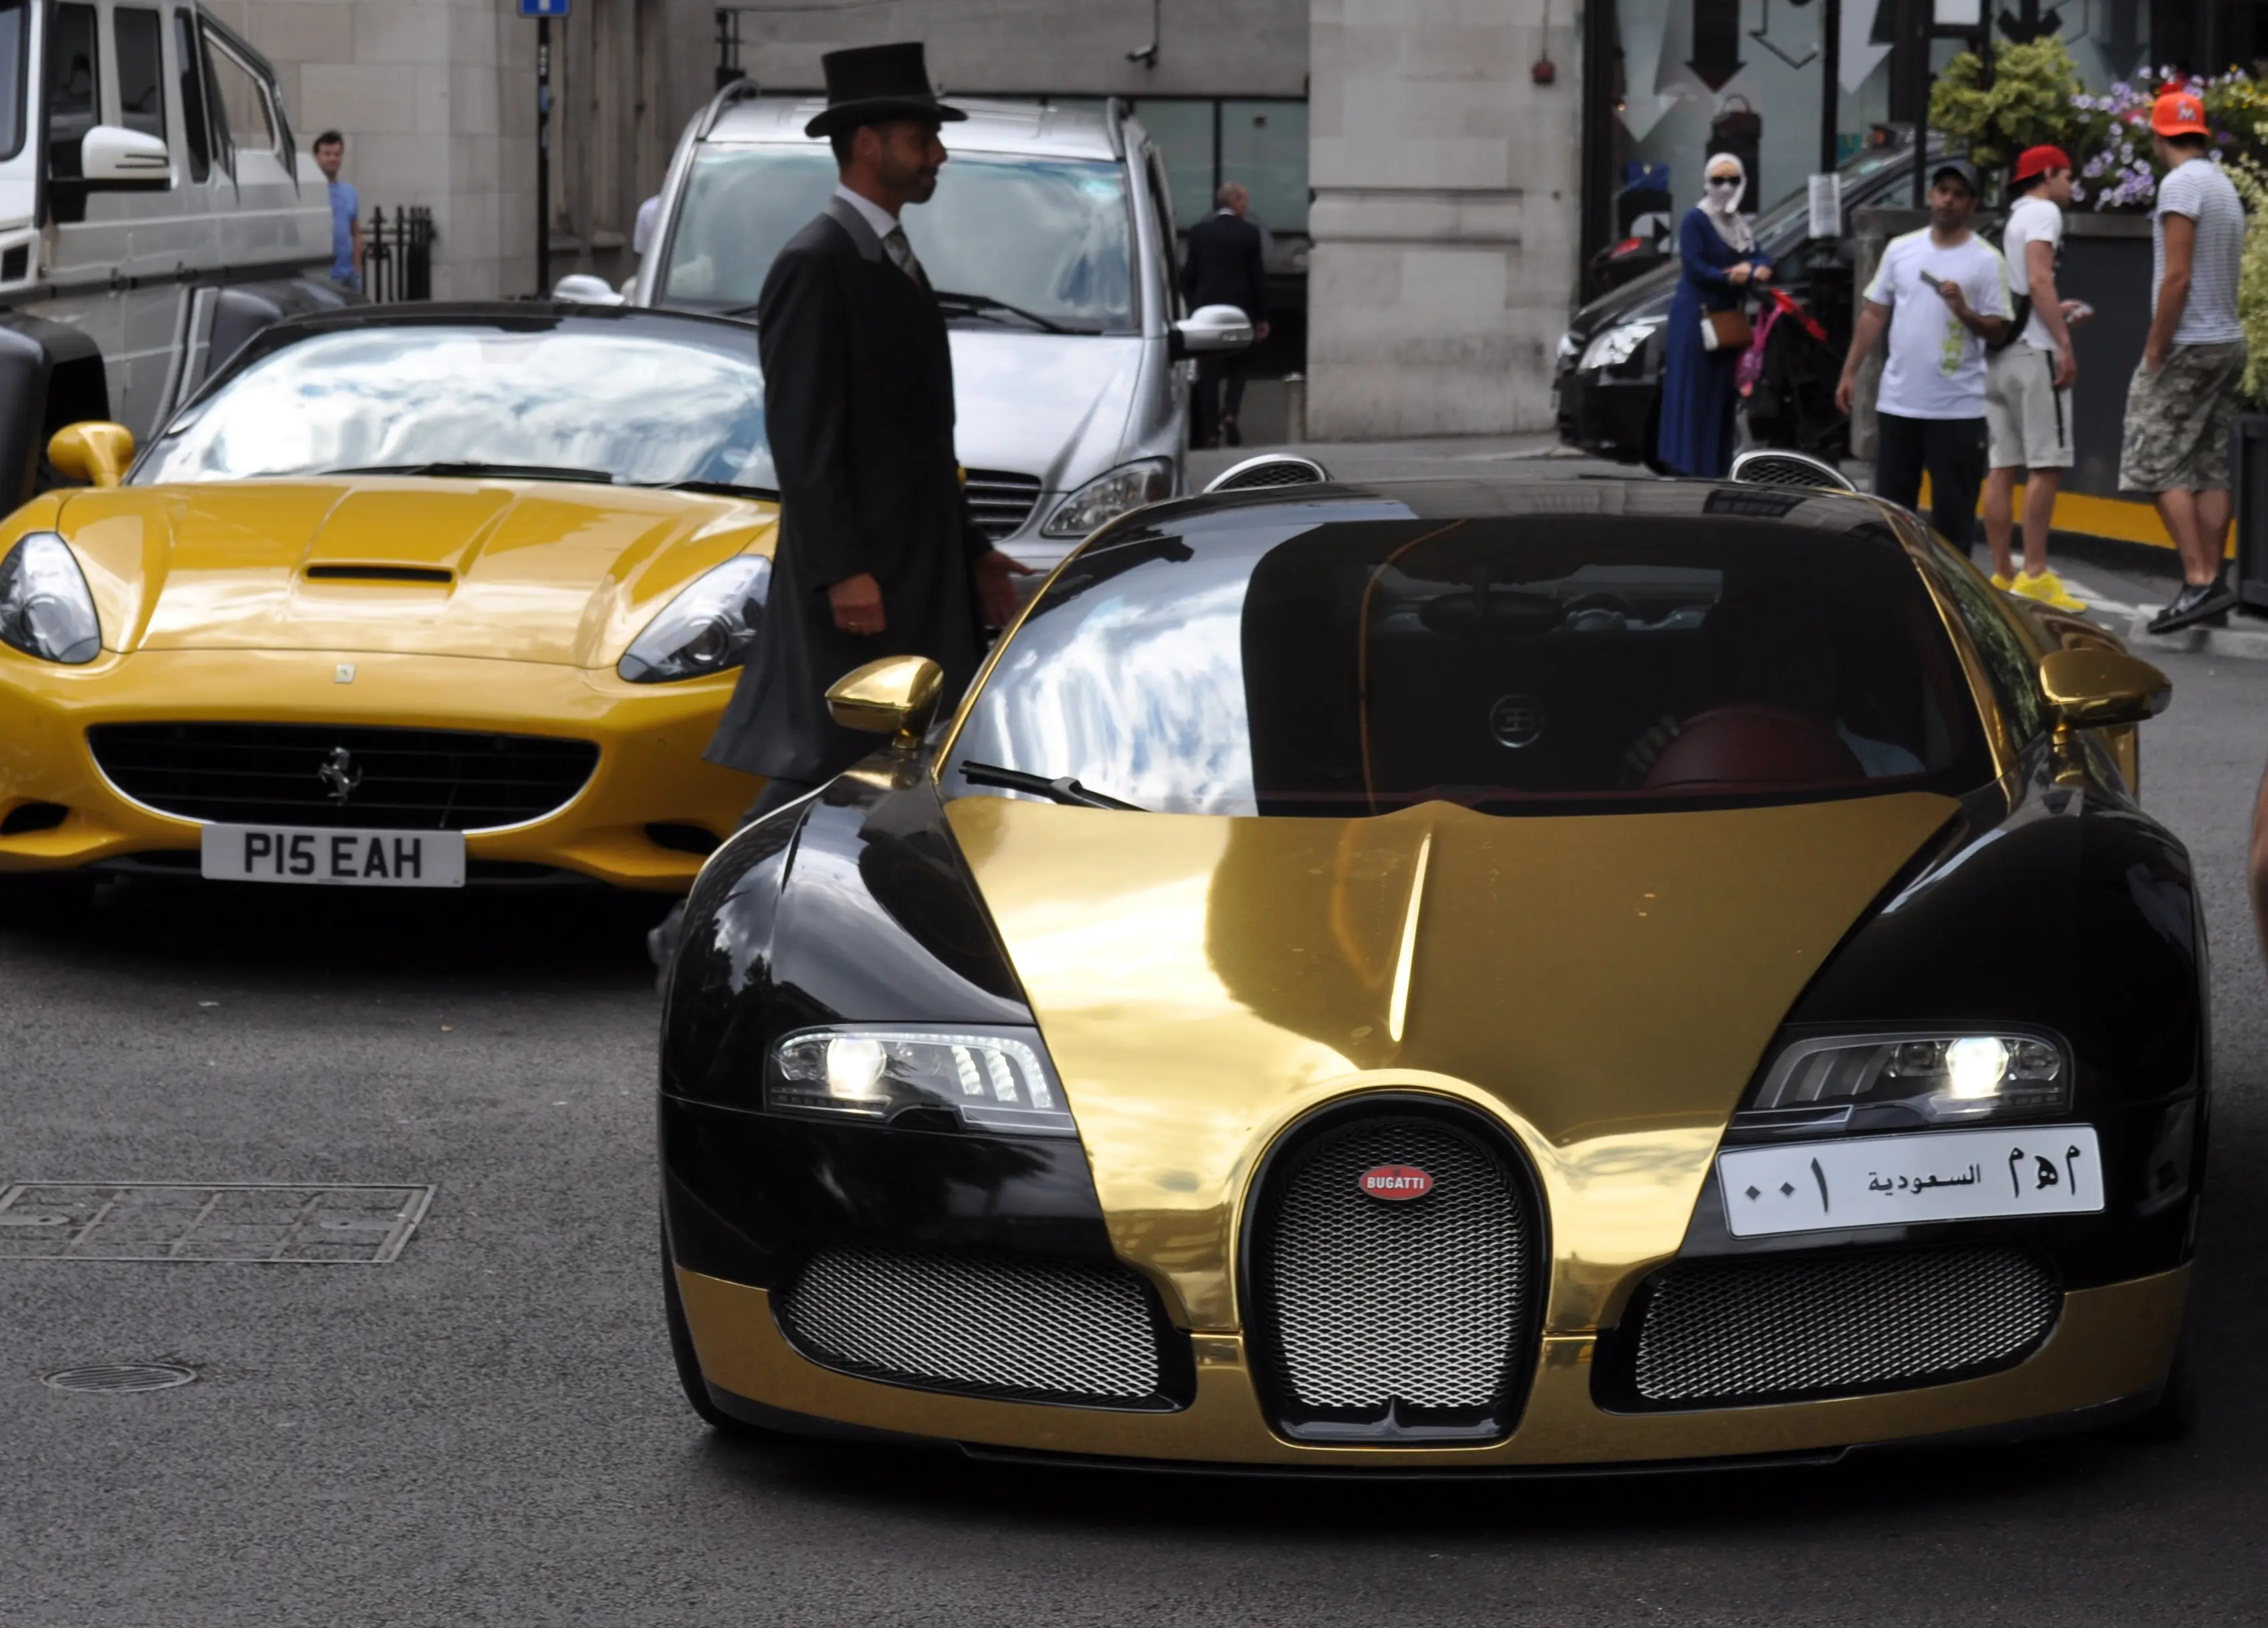 Bein Tv Grille Ramadan Rush Hour As Supercars Hit London Streets For Eid Al